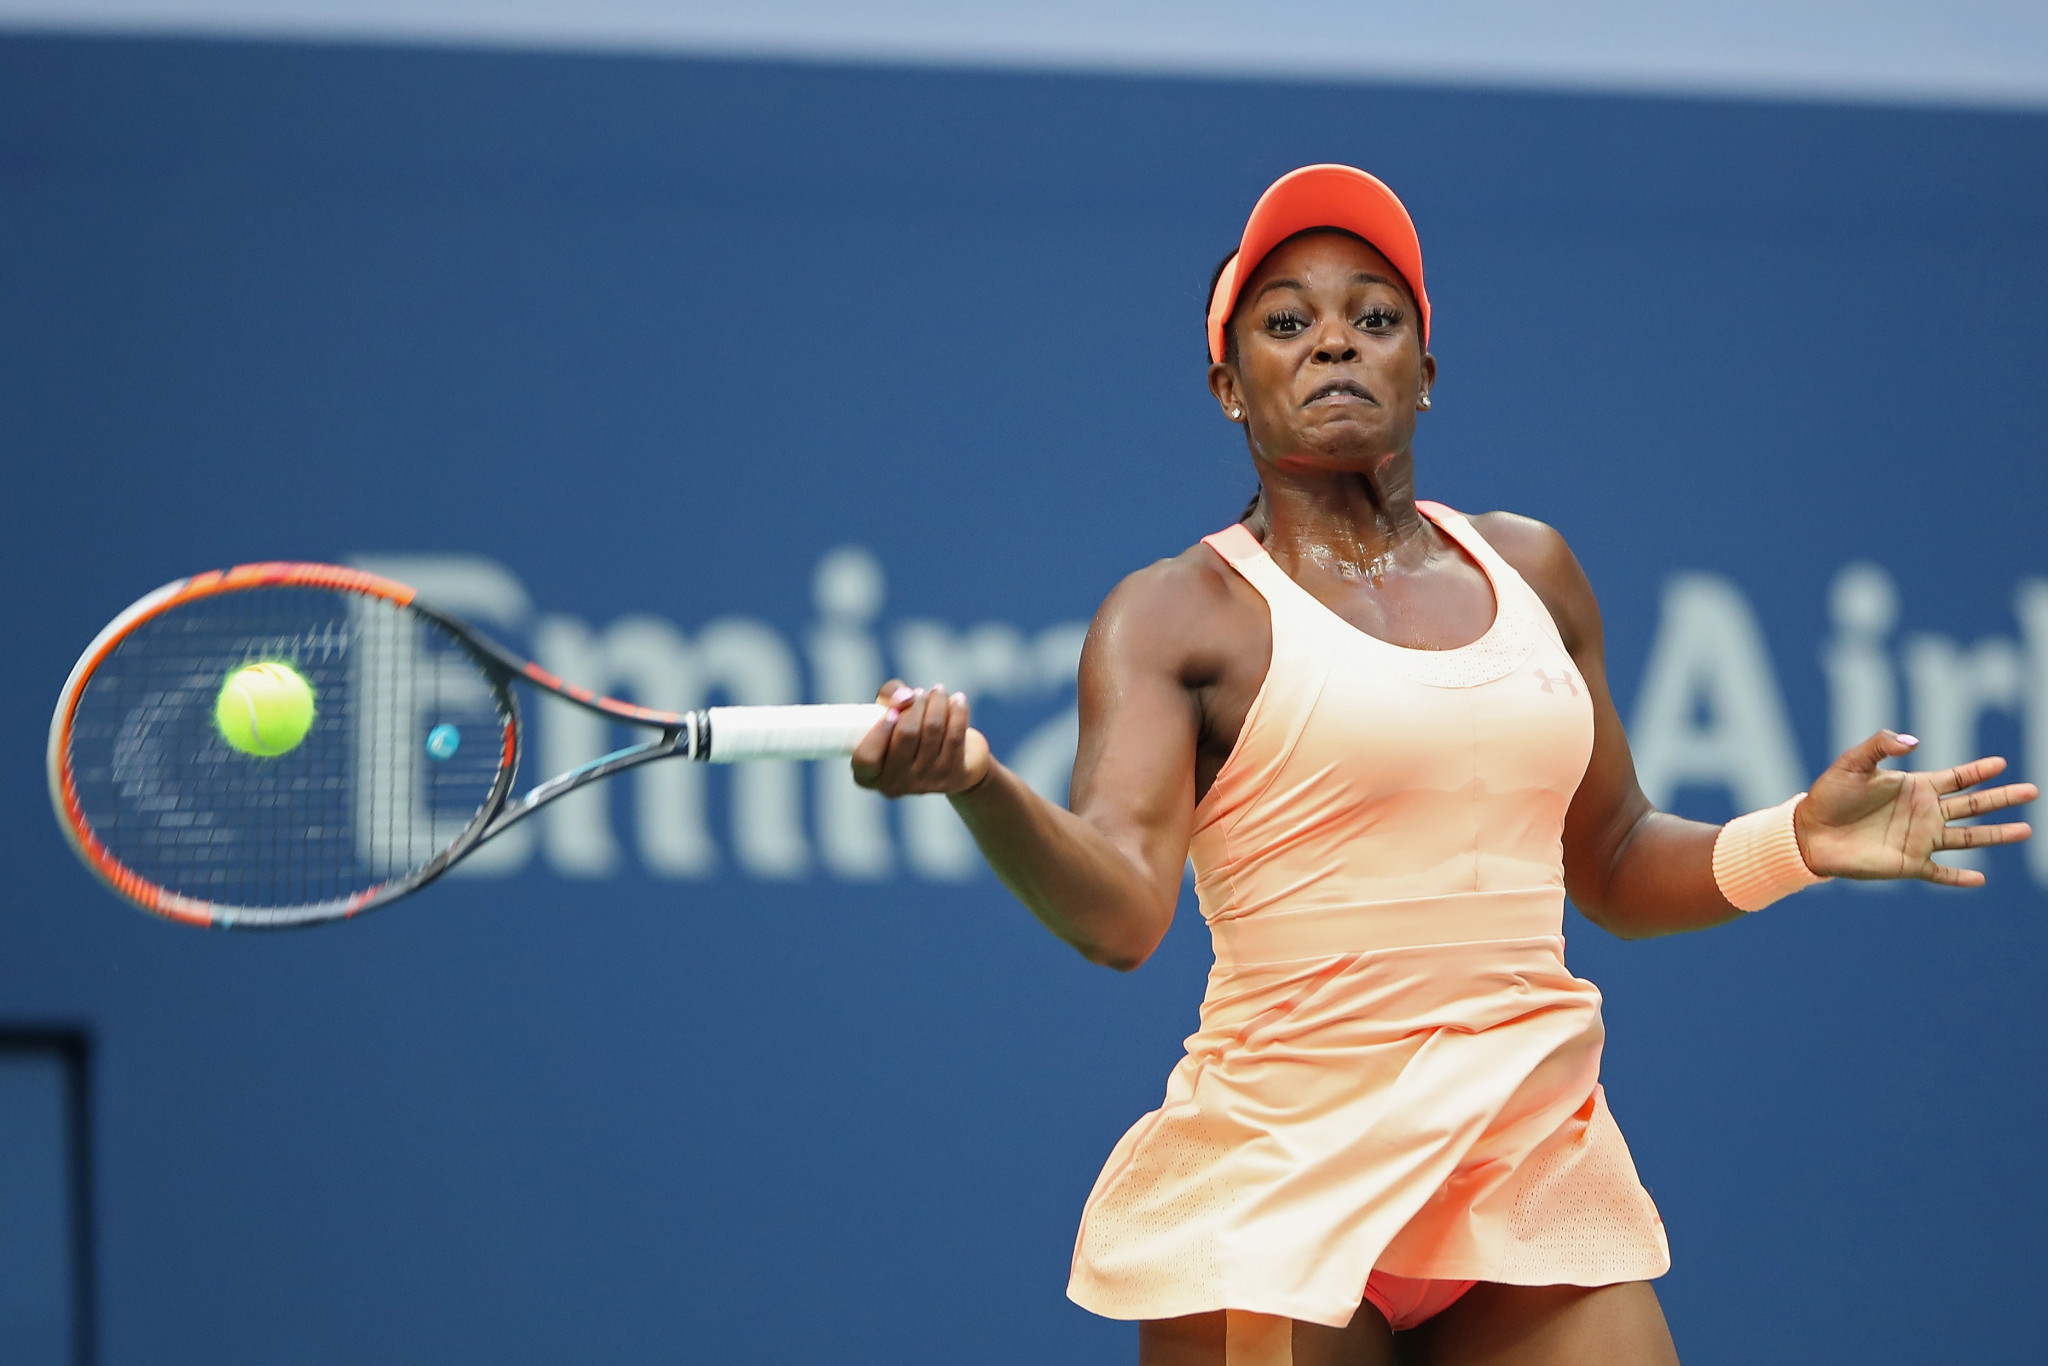 Sloane Stephens, pictured, claimed a 6-3, 6-0 victory over Madison Keys in an all-American final ©Getty Images